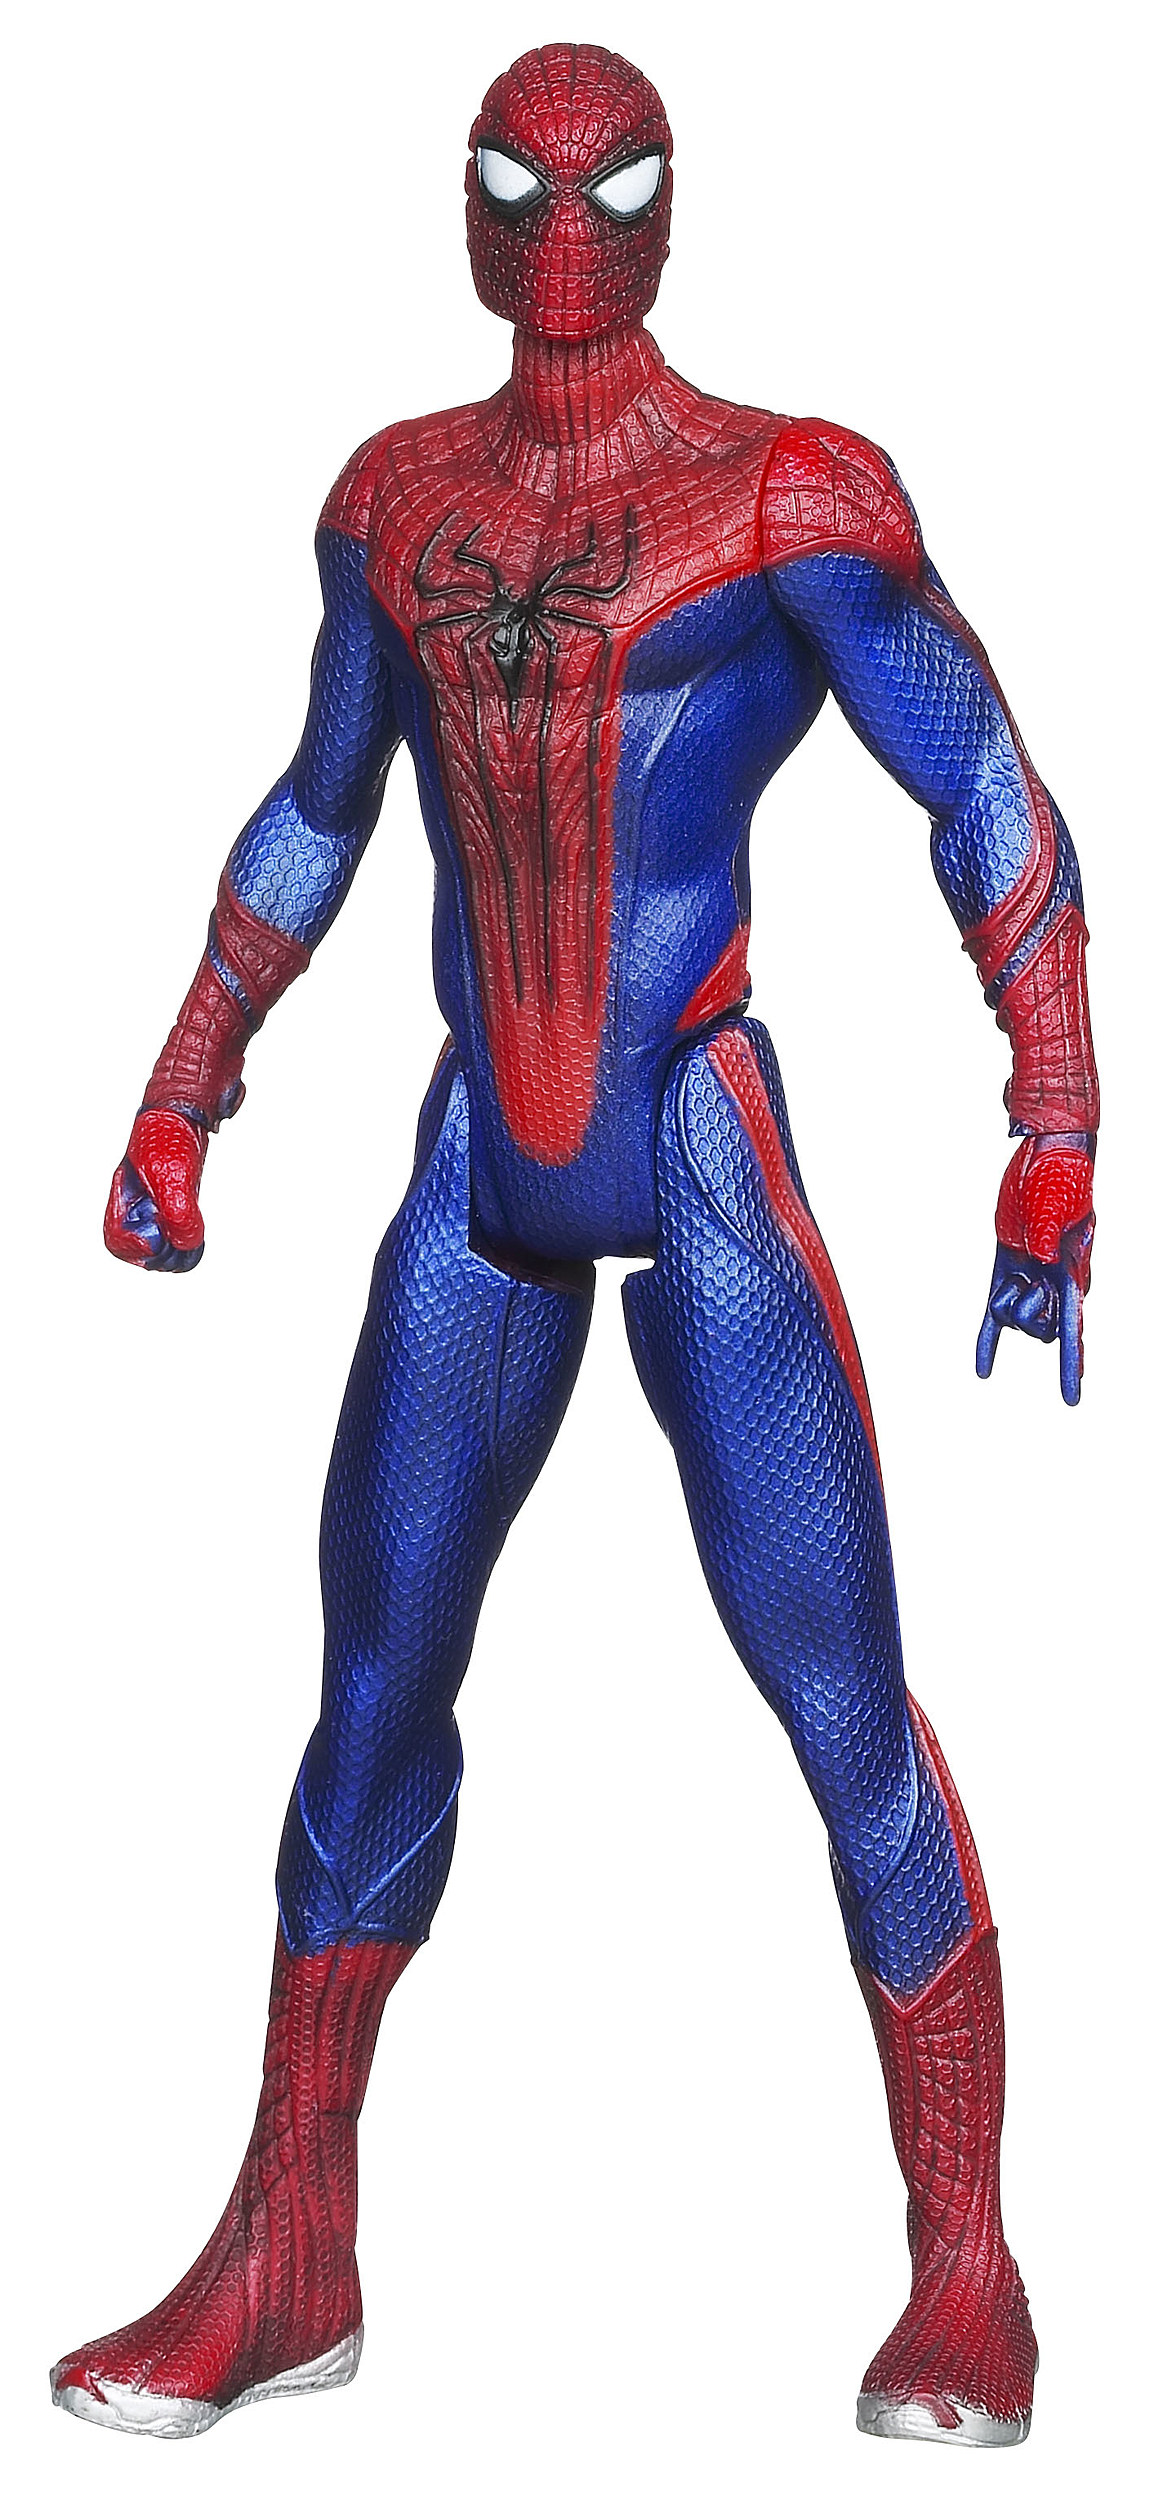 Best Super Hero Toys And Action Figures : 'the amazing spider man movie toy images arrive fair